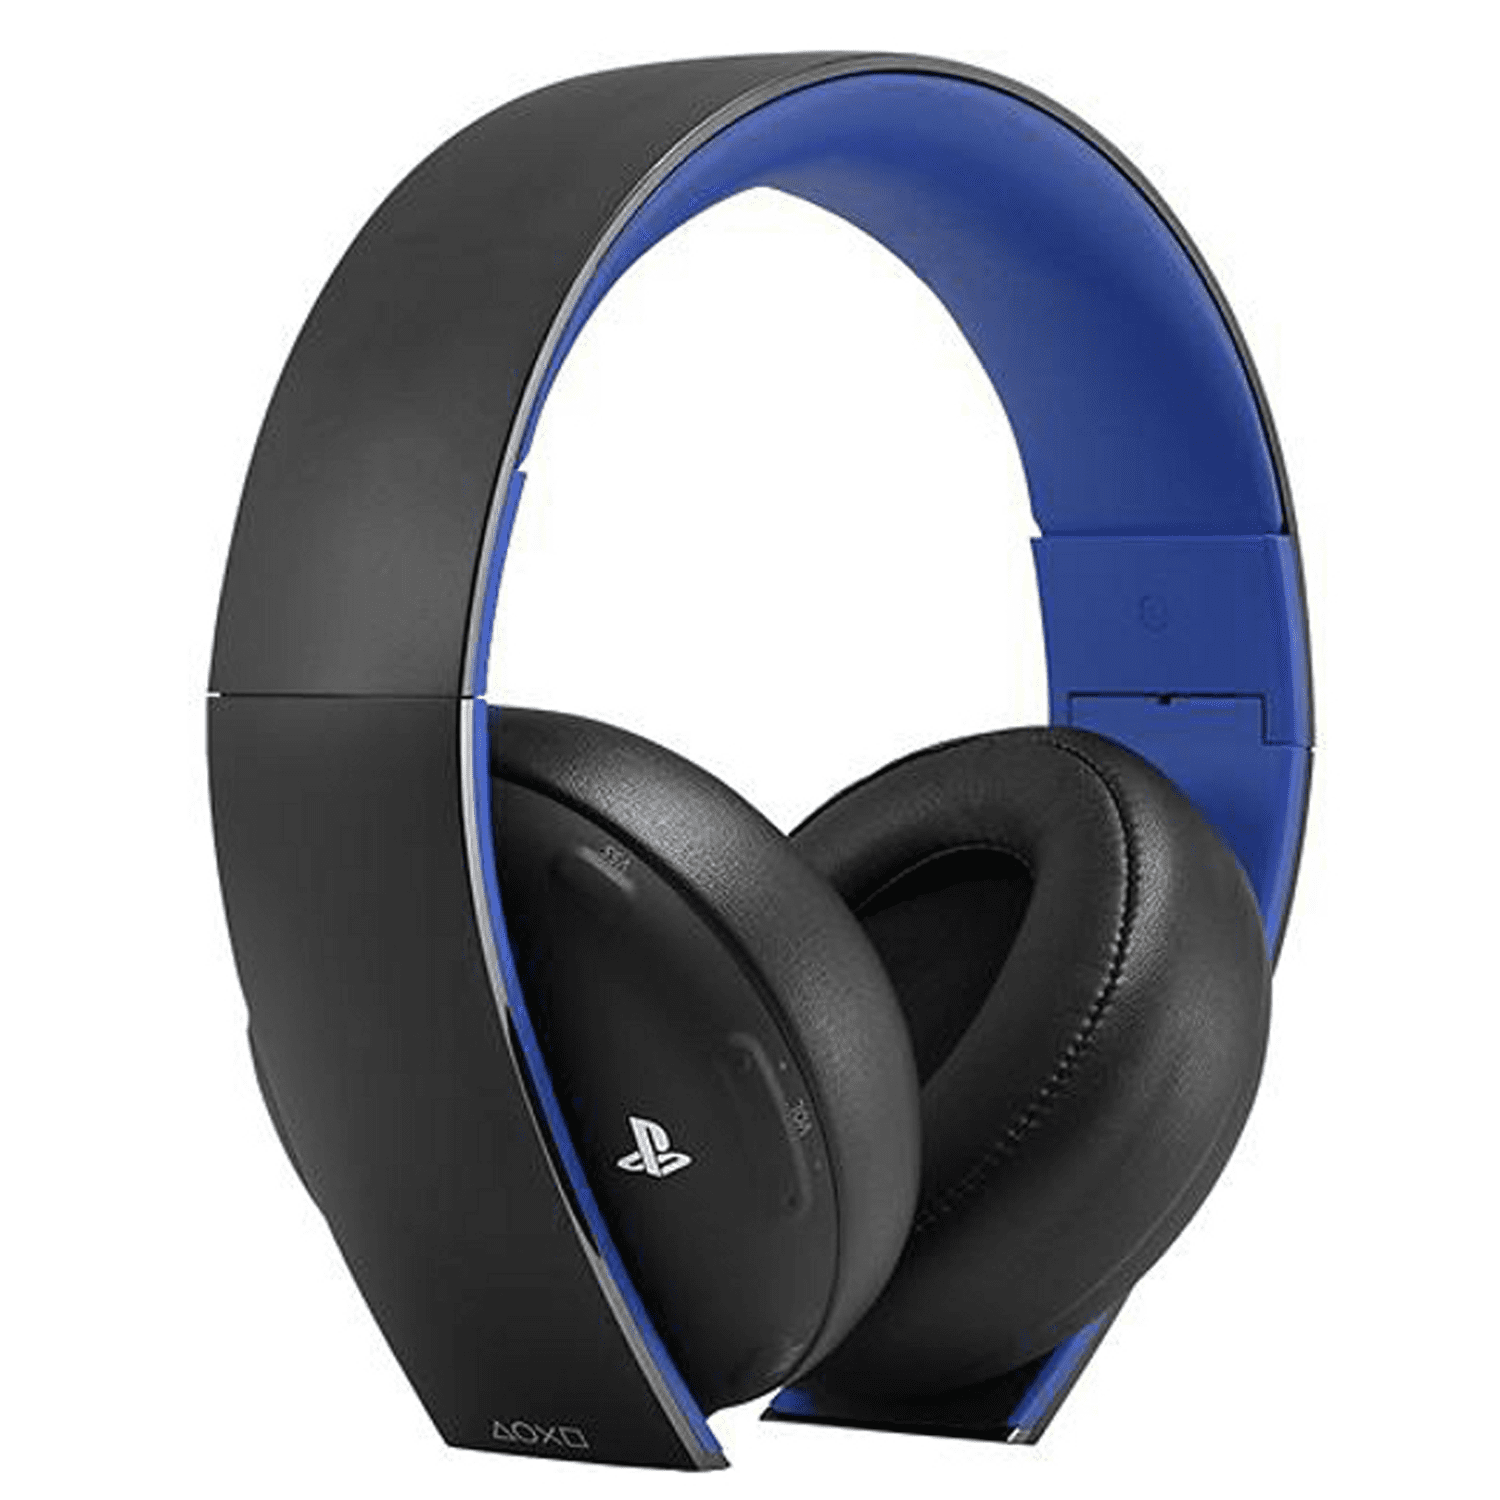 Buy PlayStation Gold Wireless Headset Accessories in Egypt - Shamy Stores